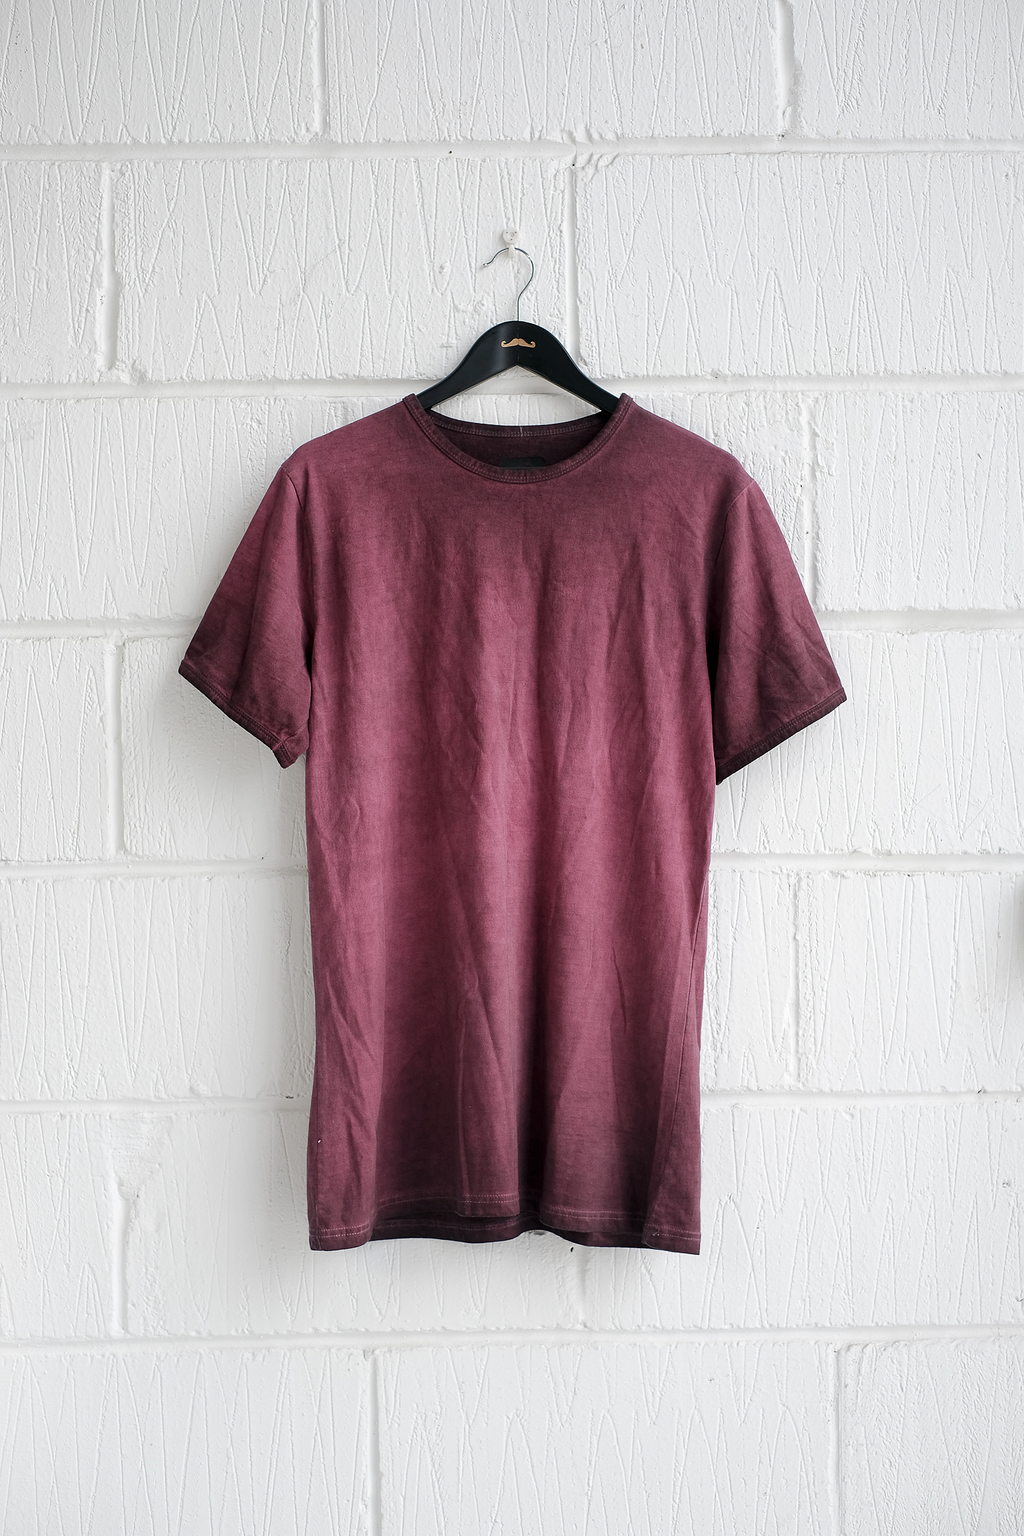 SAMPLE T-SHIRT — ONYX WASH